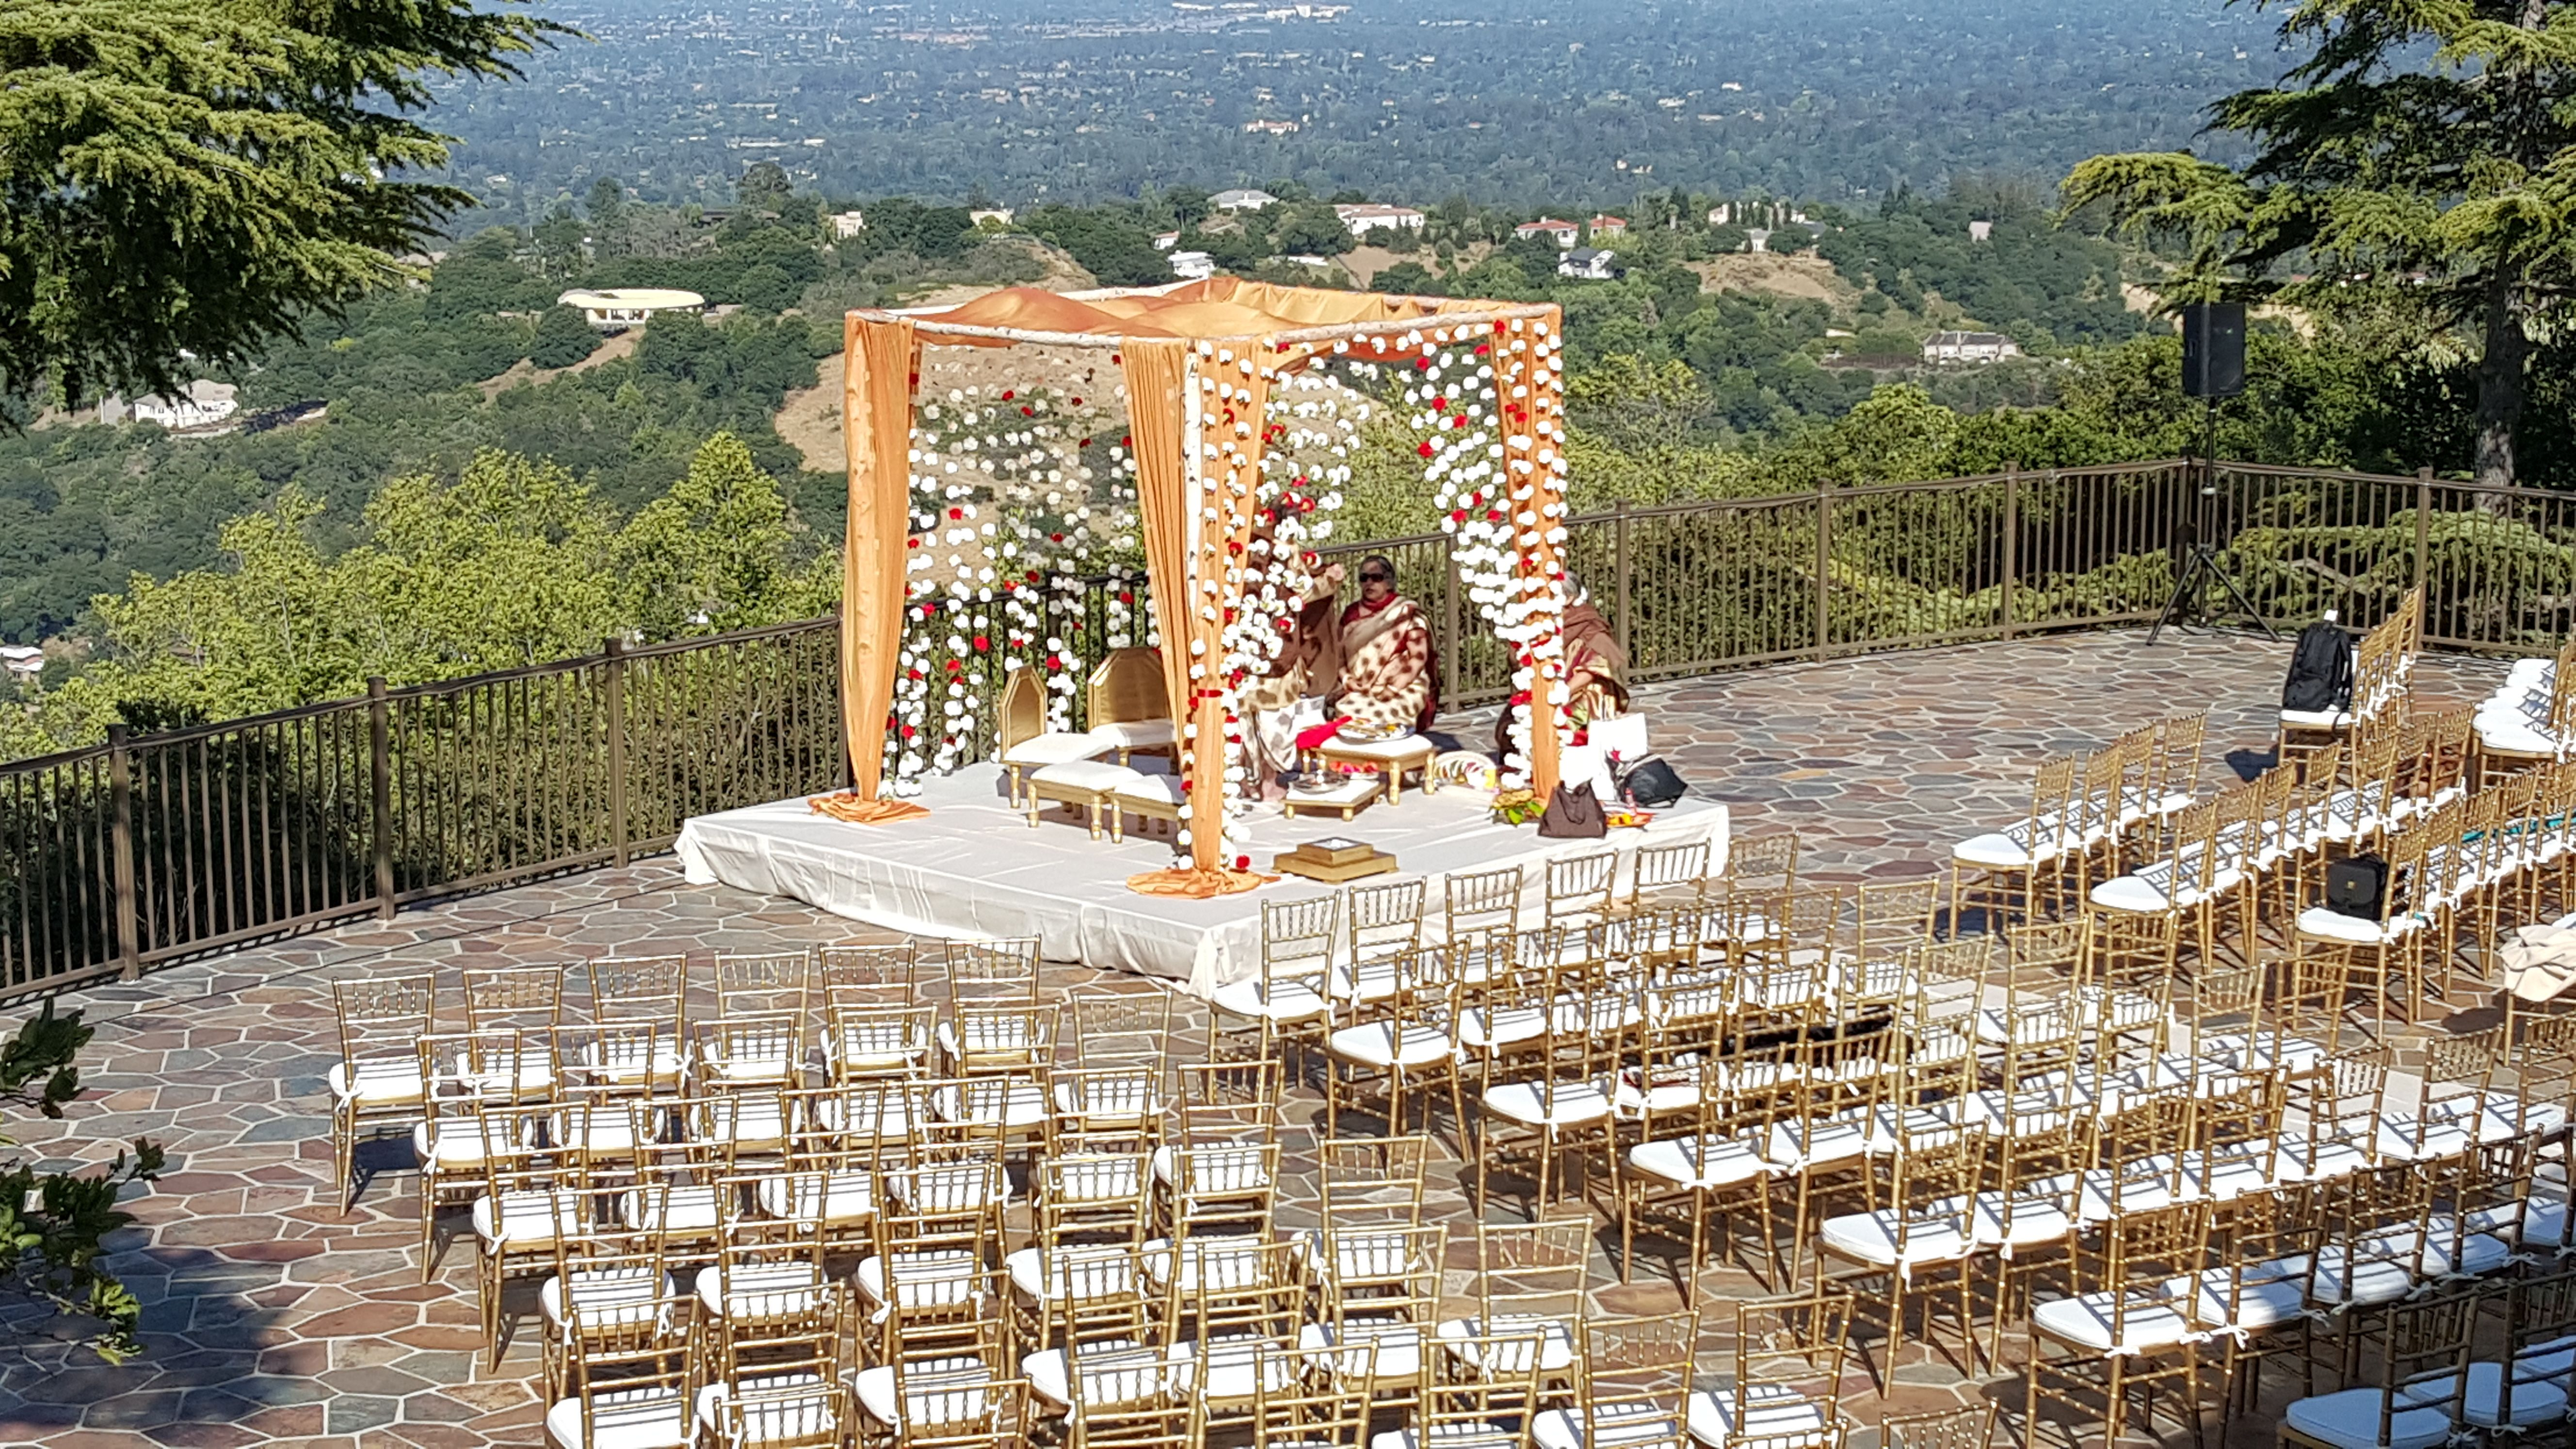 Chiavari chairs rental chicago chairs for - Elegantly Staged With Gold Chiavari Chairs And Breathtaking Views At The Mountain Winery